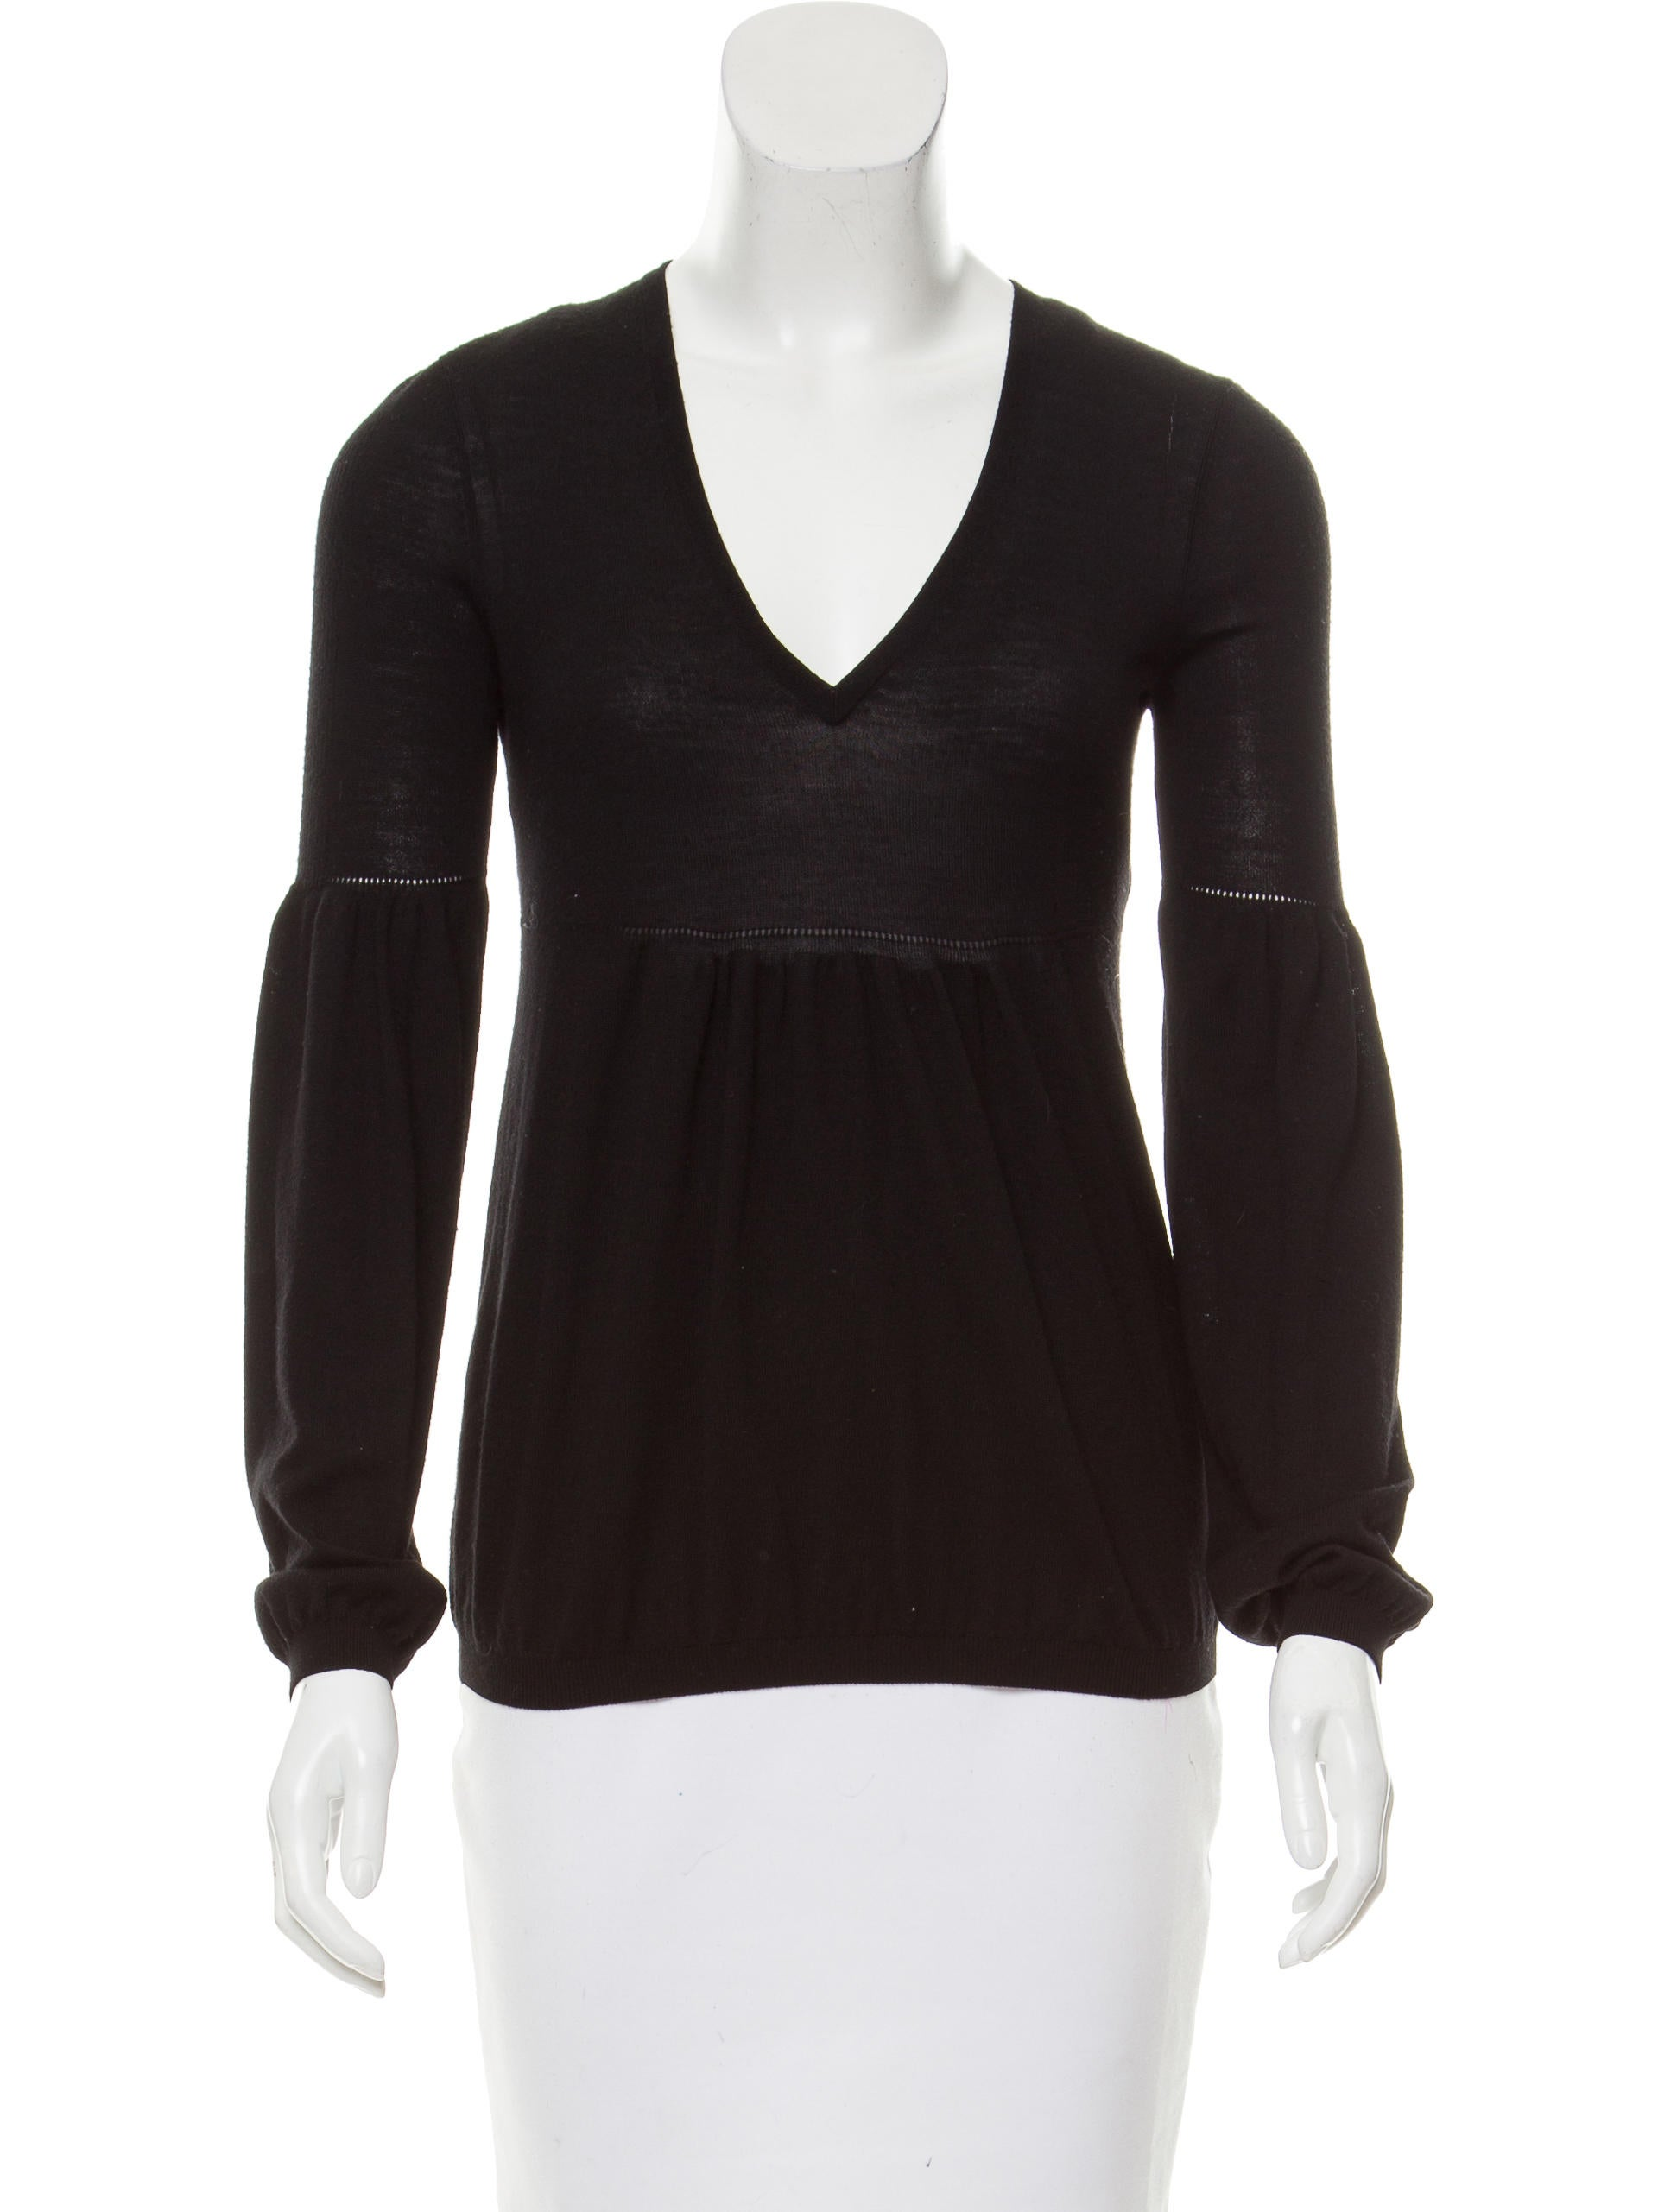 Fendi wool knit top clothing fen55648 the realreal for Best wool shirt jackets